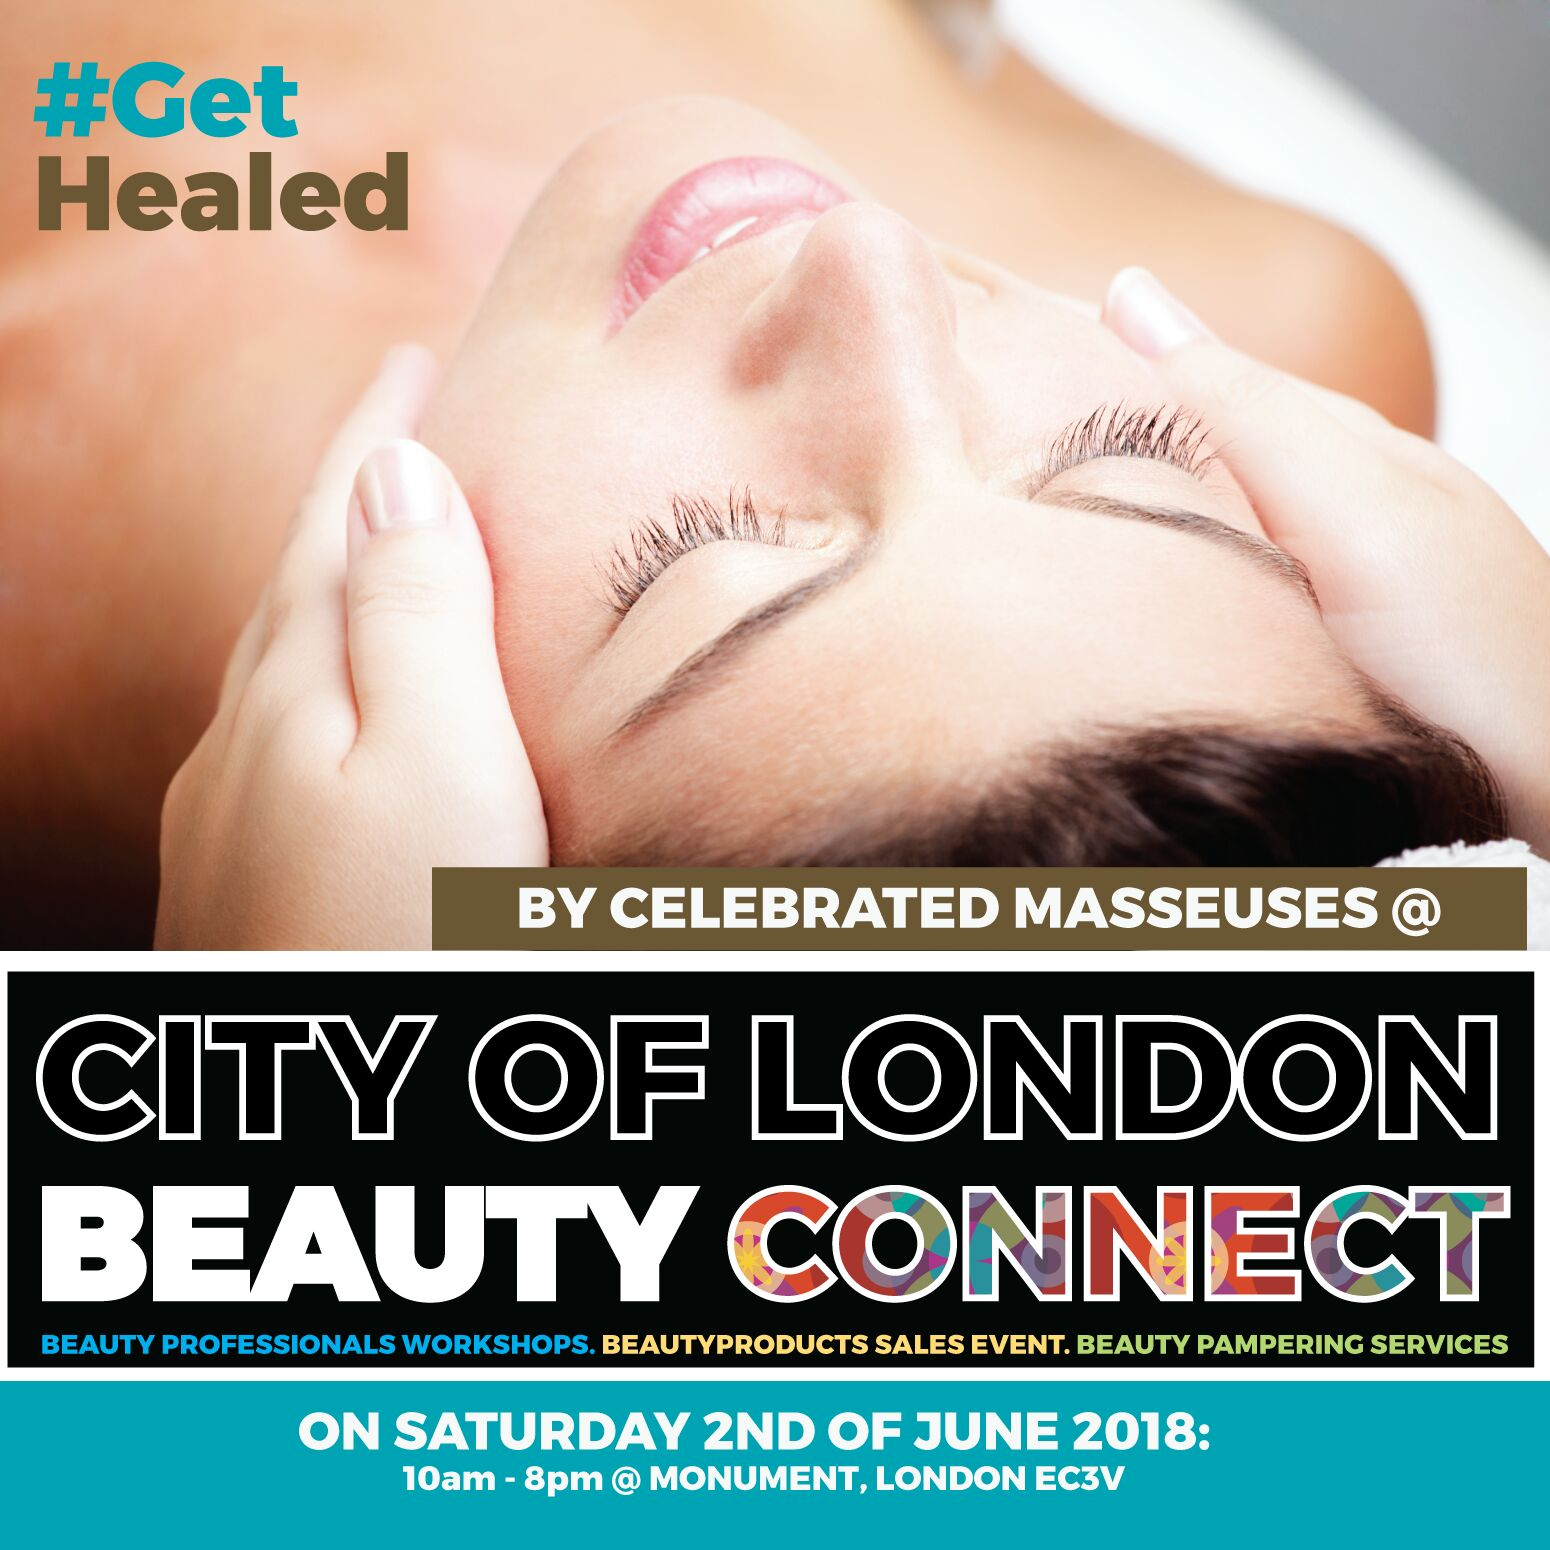 Be Healed By Beauty Experts @ Monument City of London